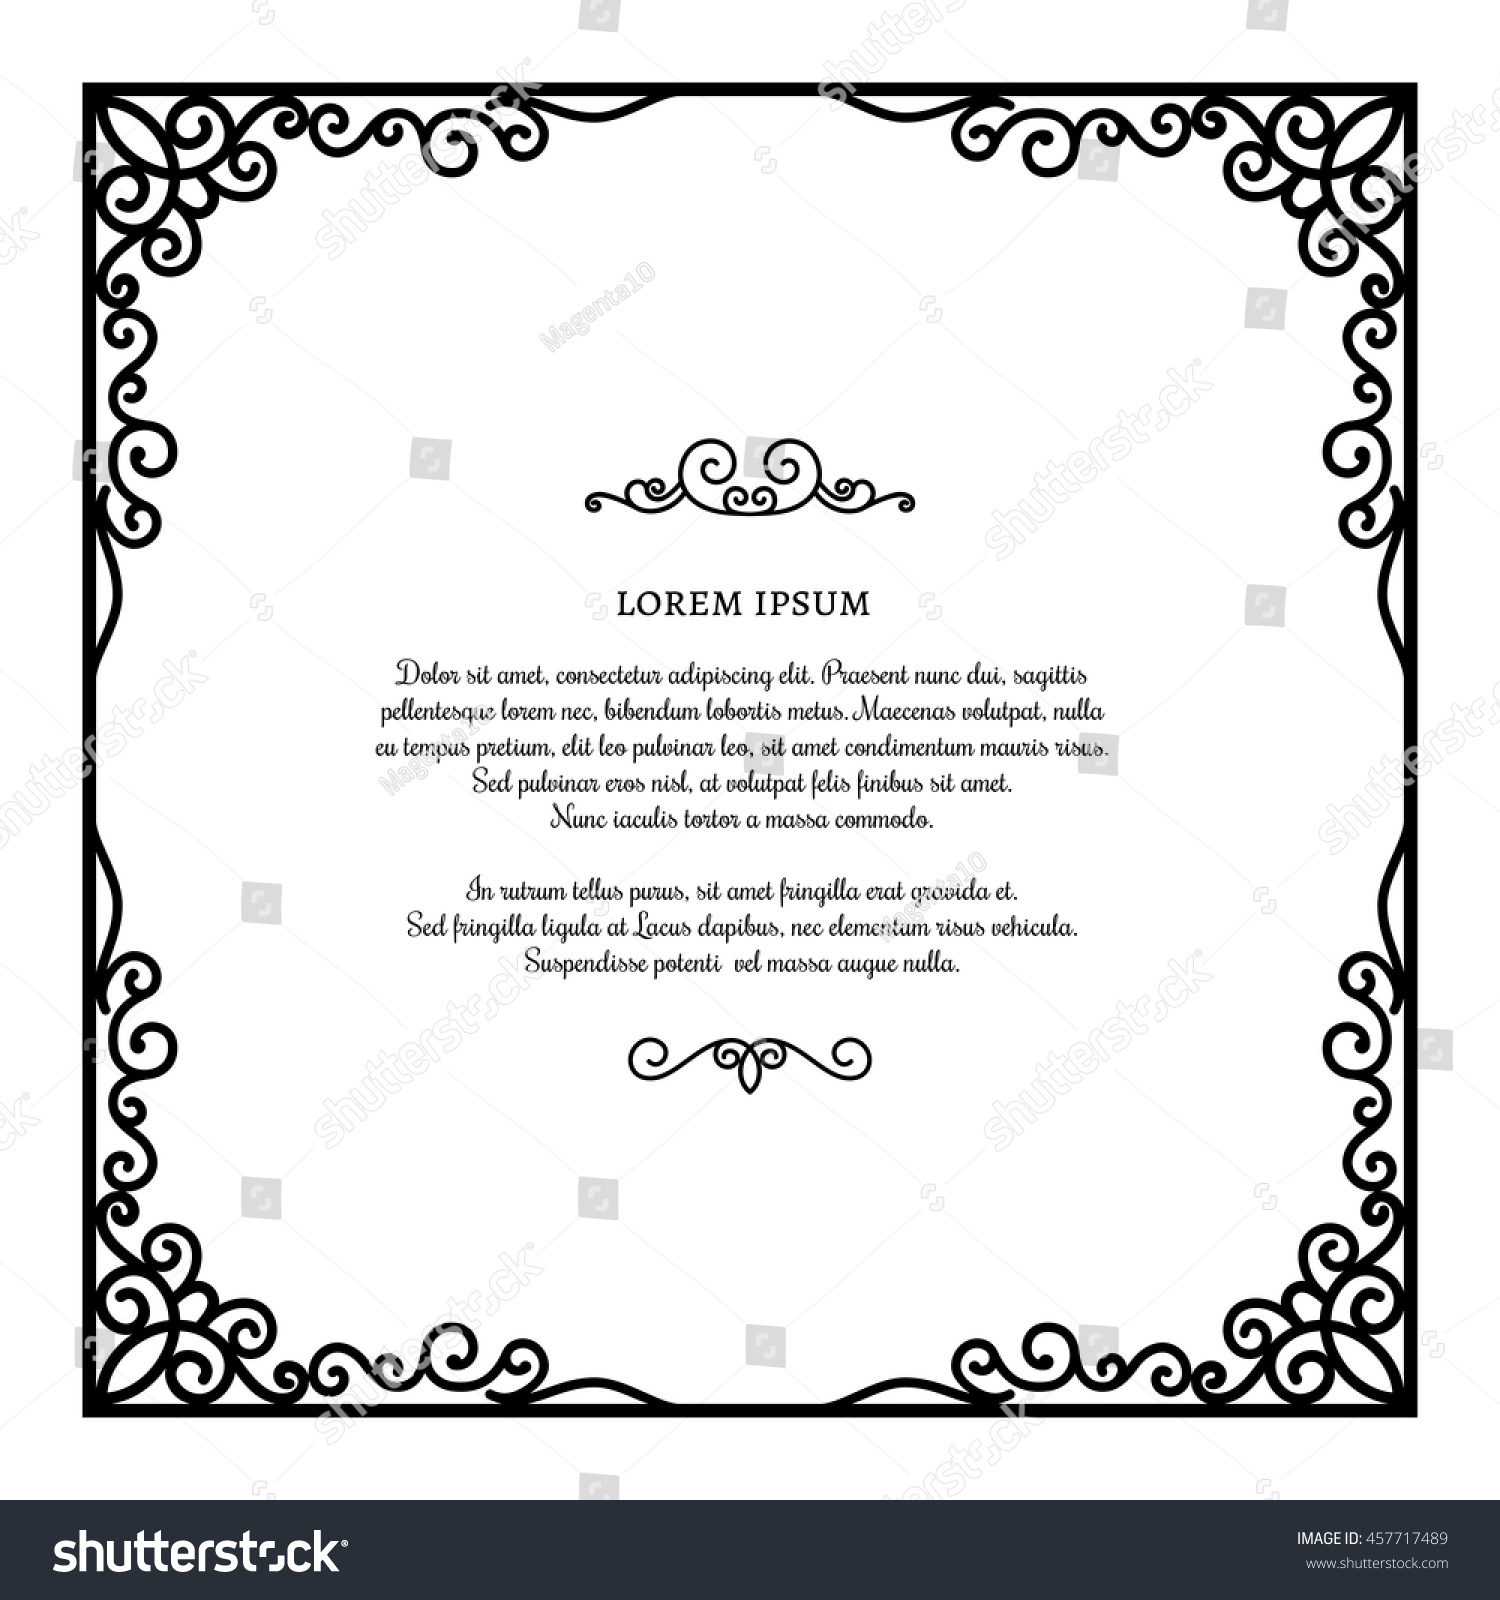 Vintage Square Frame Ornamental Corners Vector Stock Vector Royalty